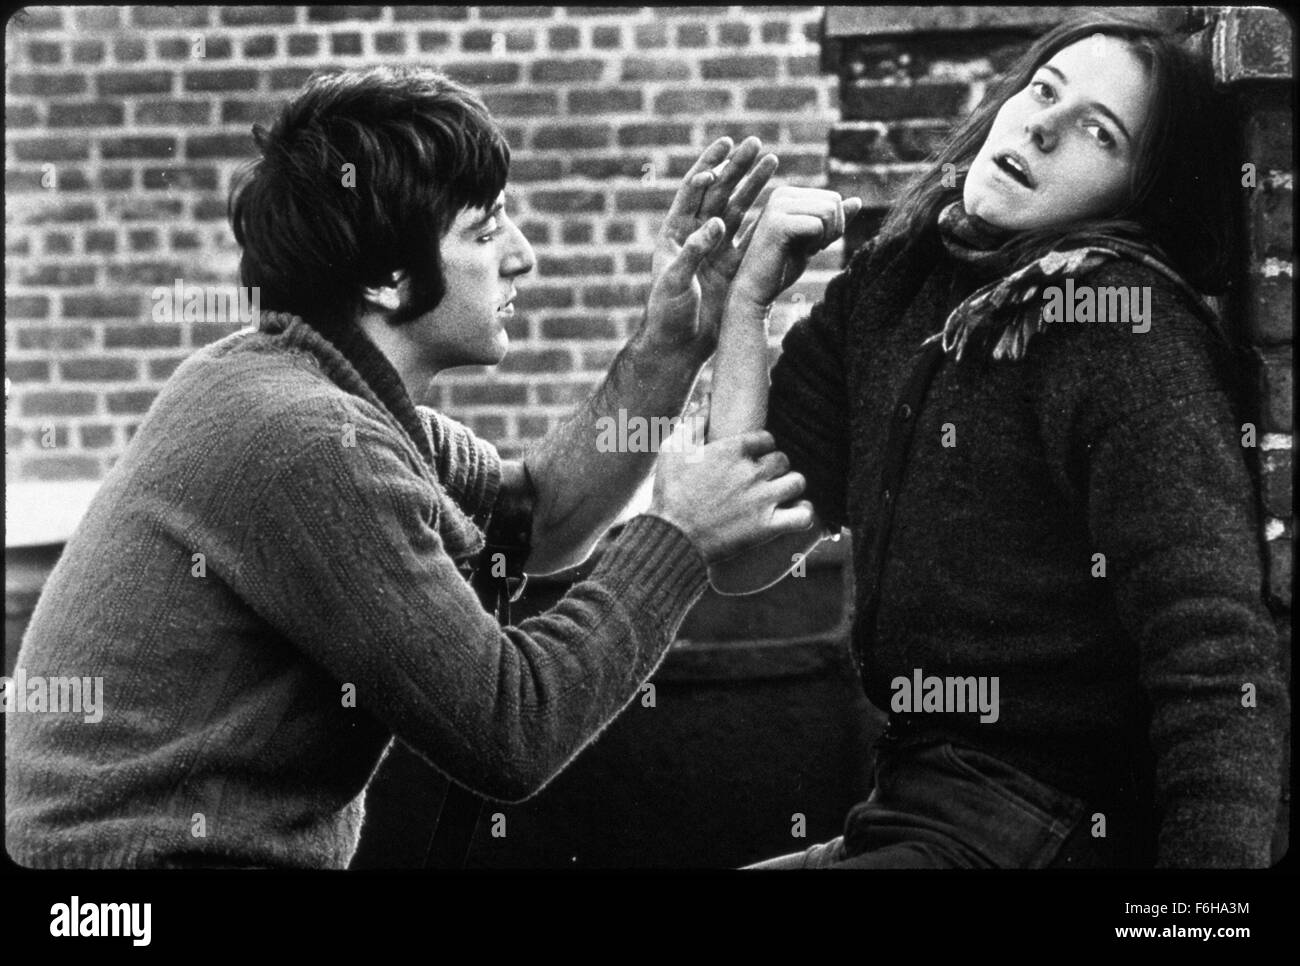 Keller Brothers Ford >> Pacino Black and White Stock Photos & Images - Alamy